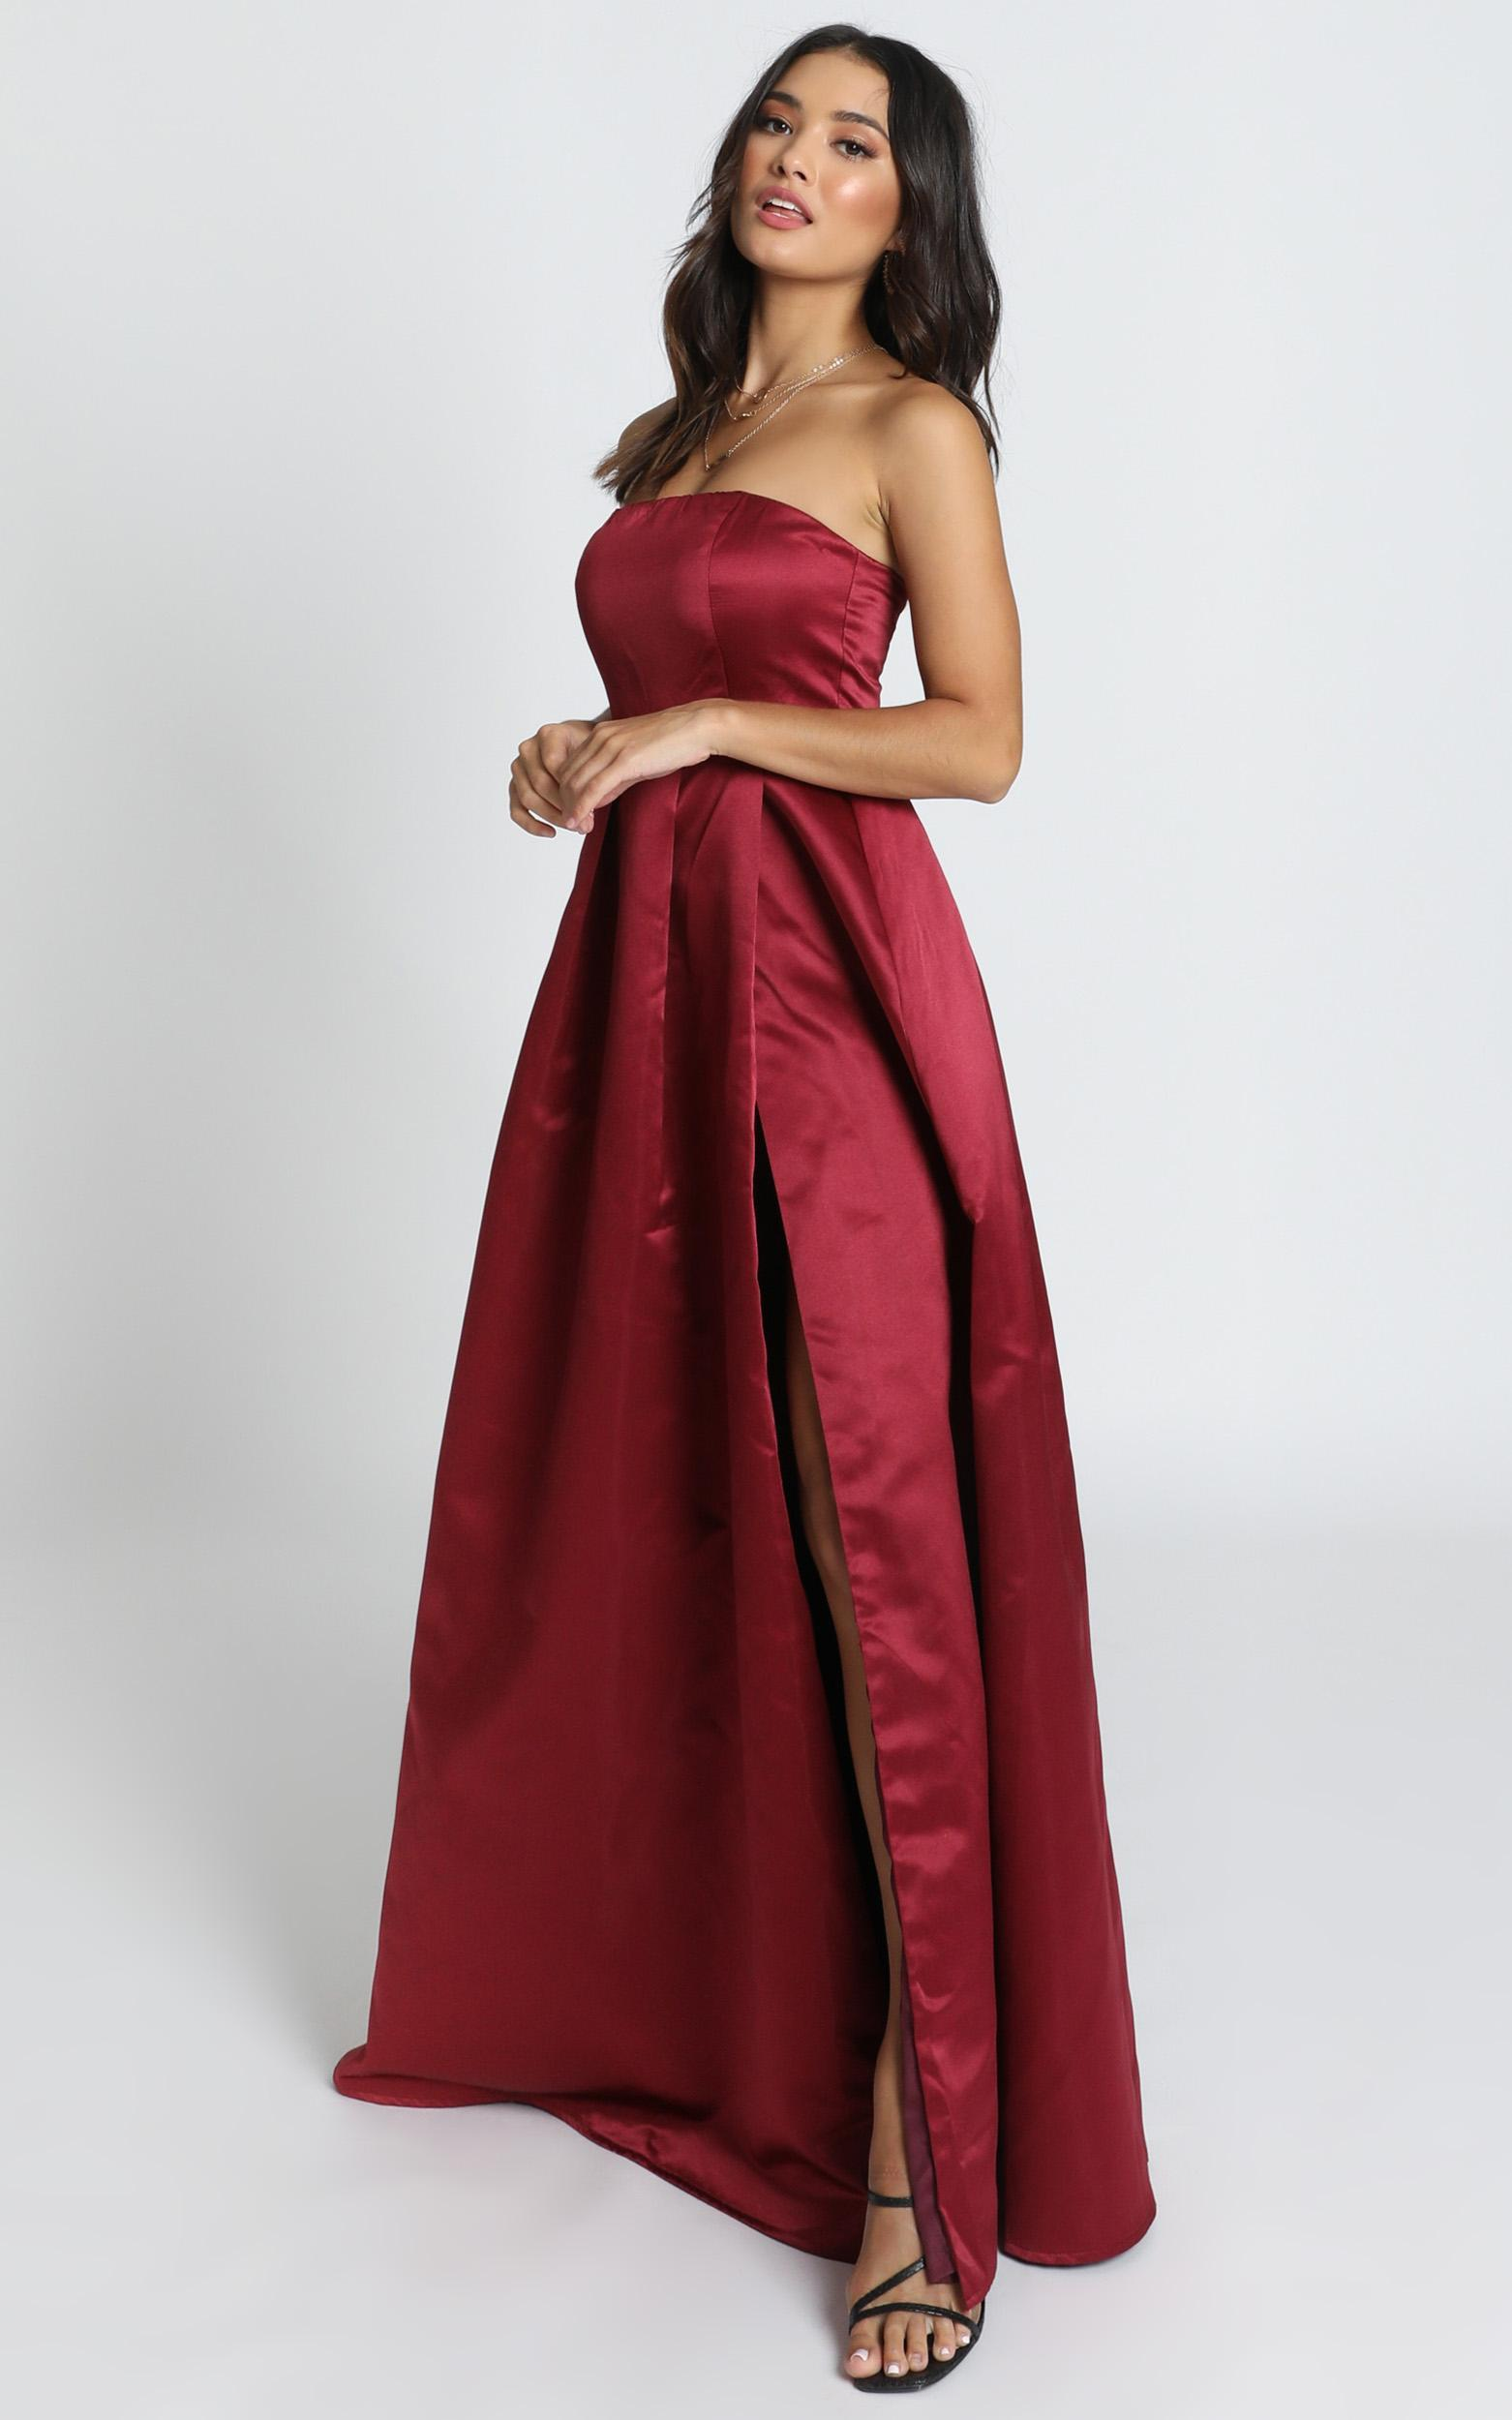 Queen Of The Show Dress In wine satin - 18 (XXXL), Wine, hi-res image number null